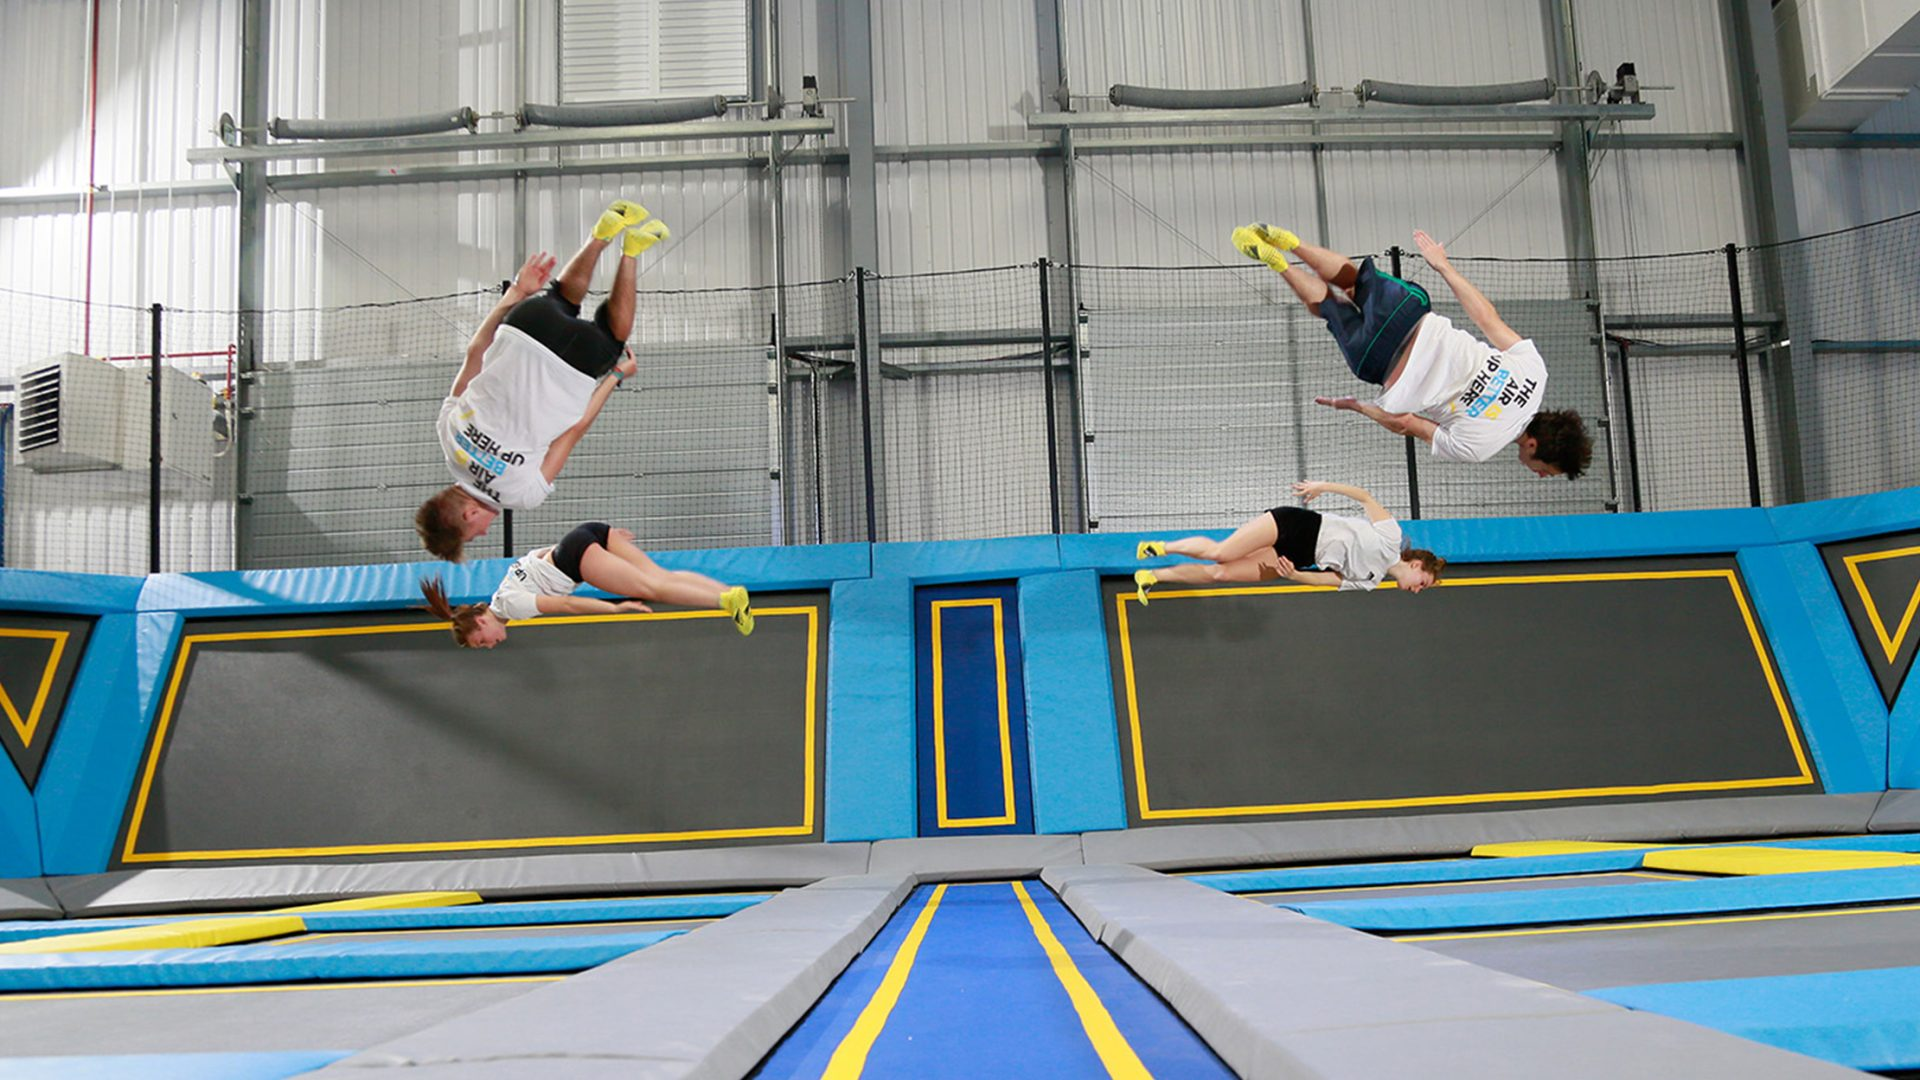 Four people somersaulting in trampoline park